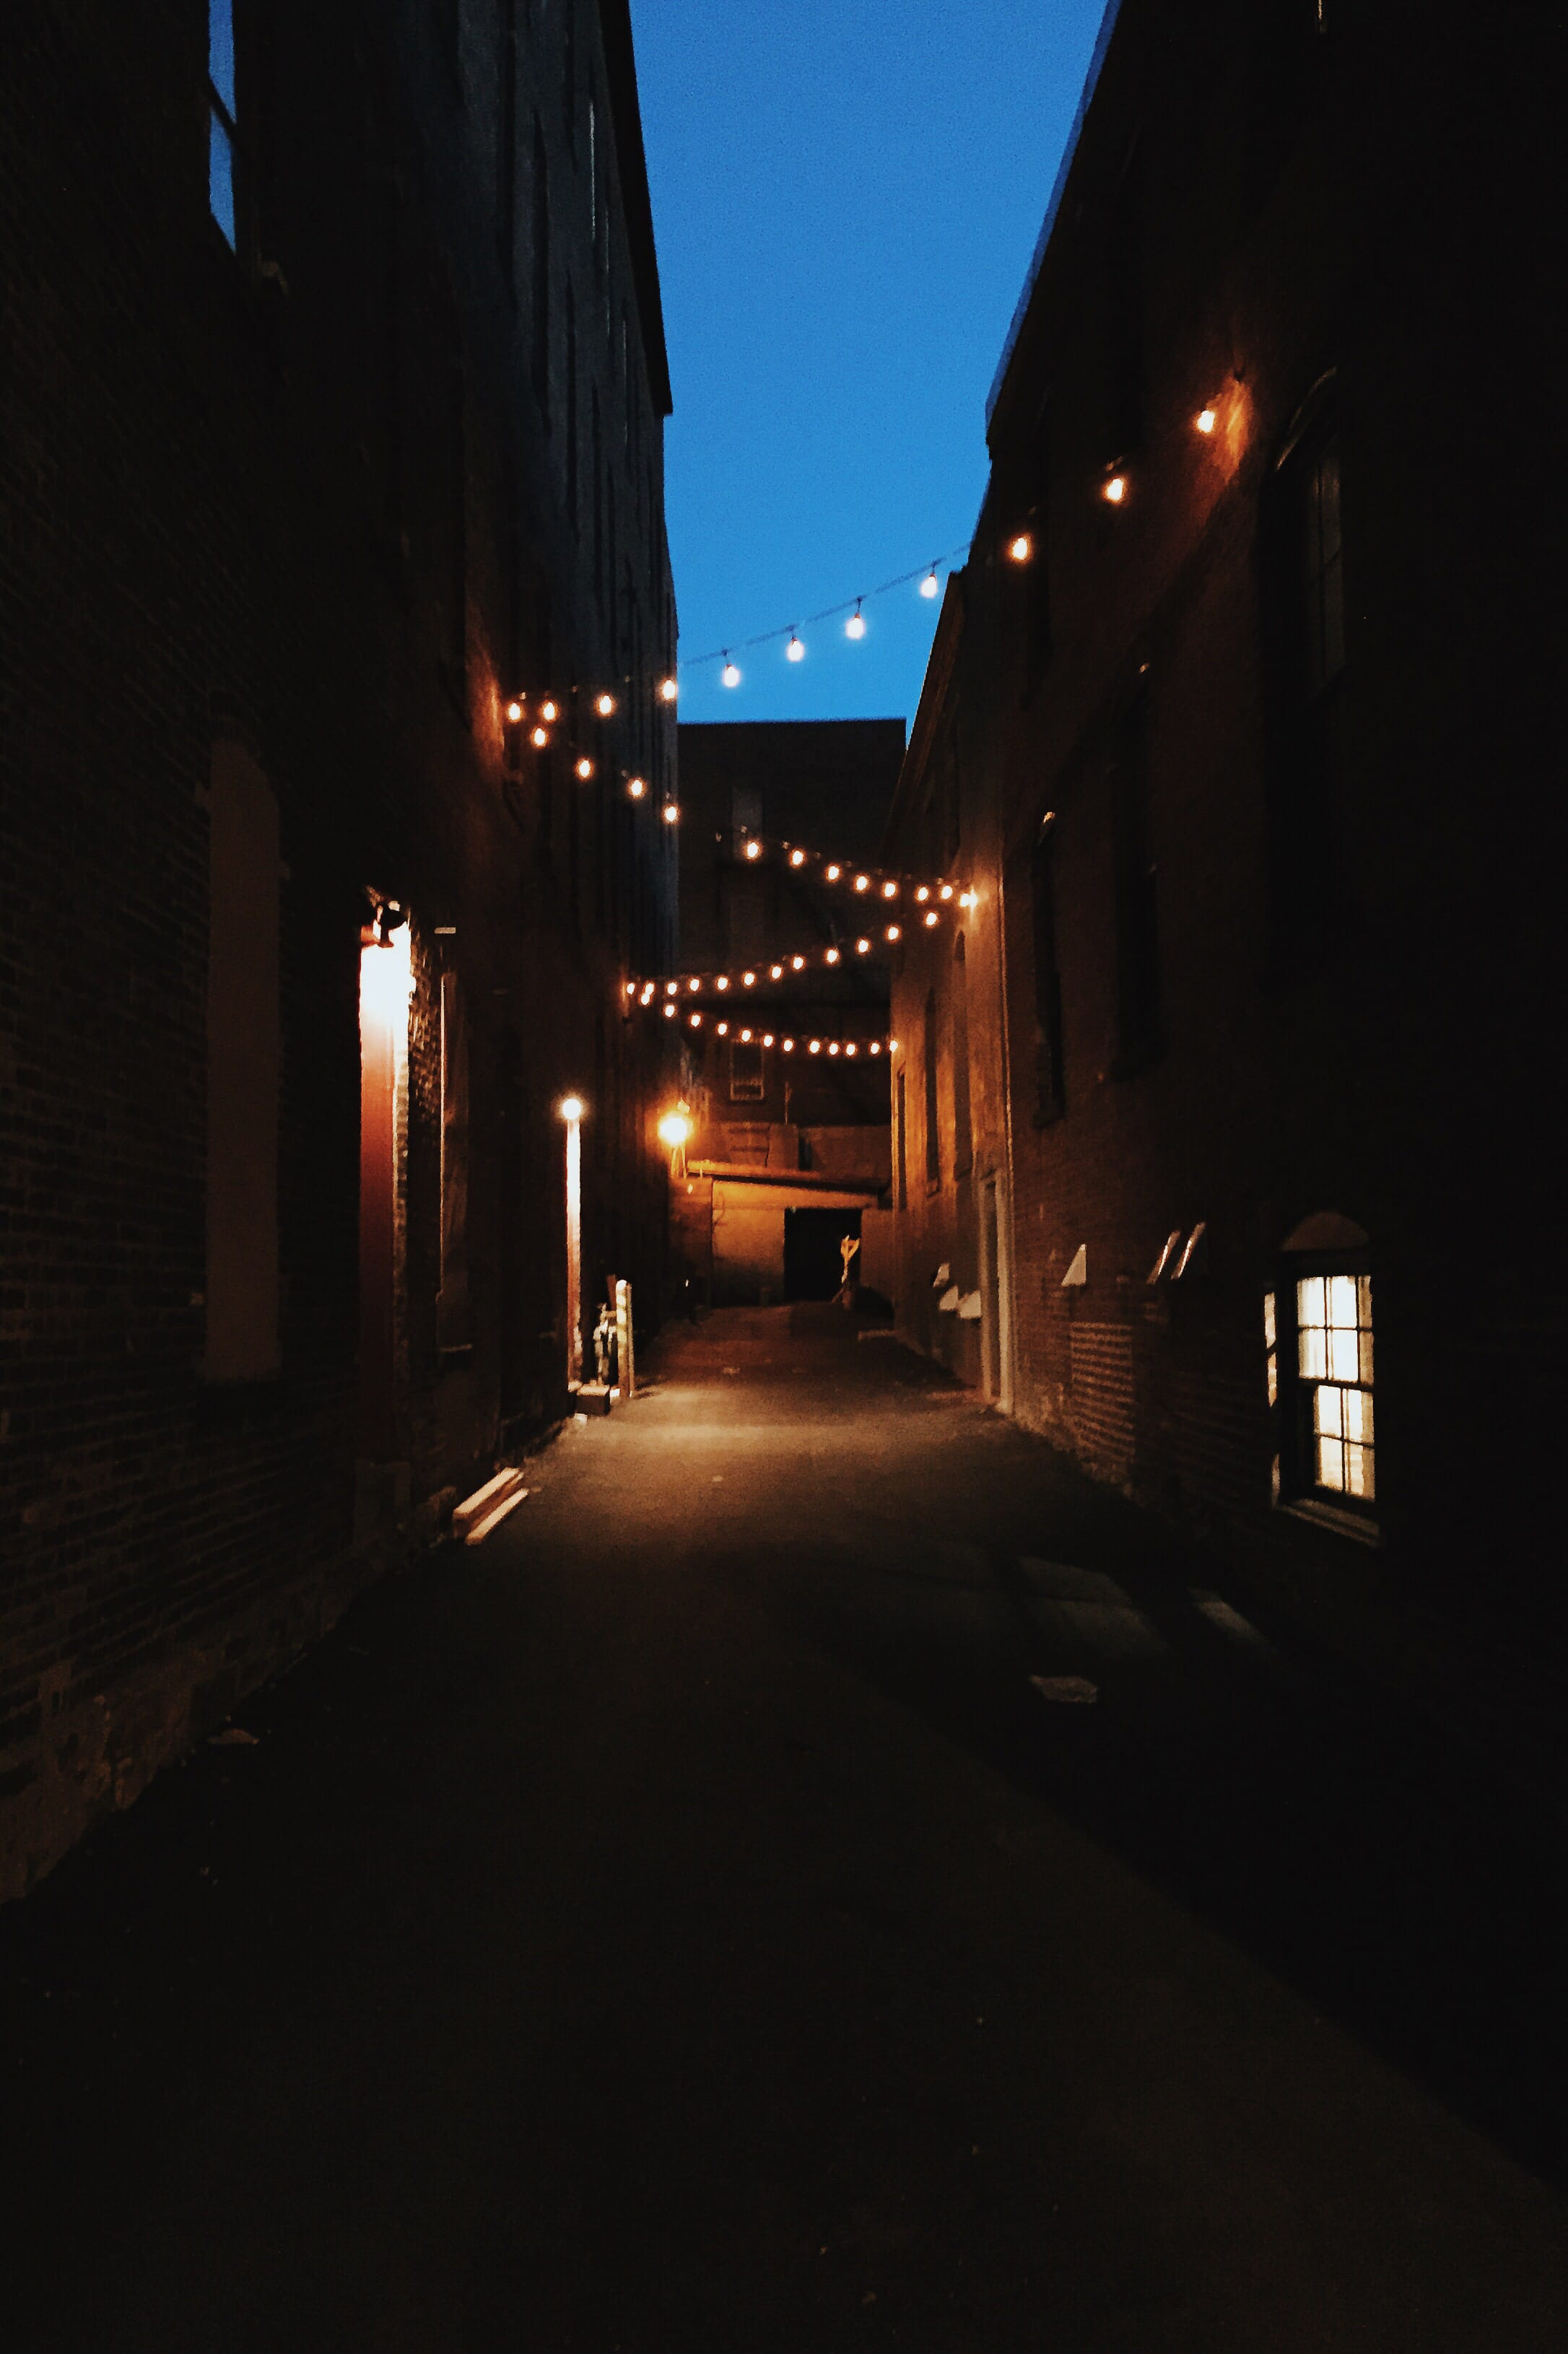 A photograph depicting Grannan Street Alleyway Rope Lights at Night